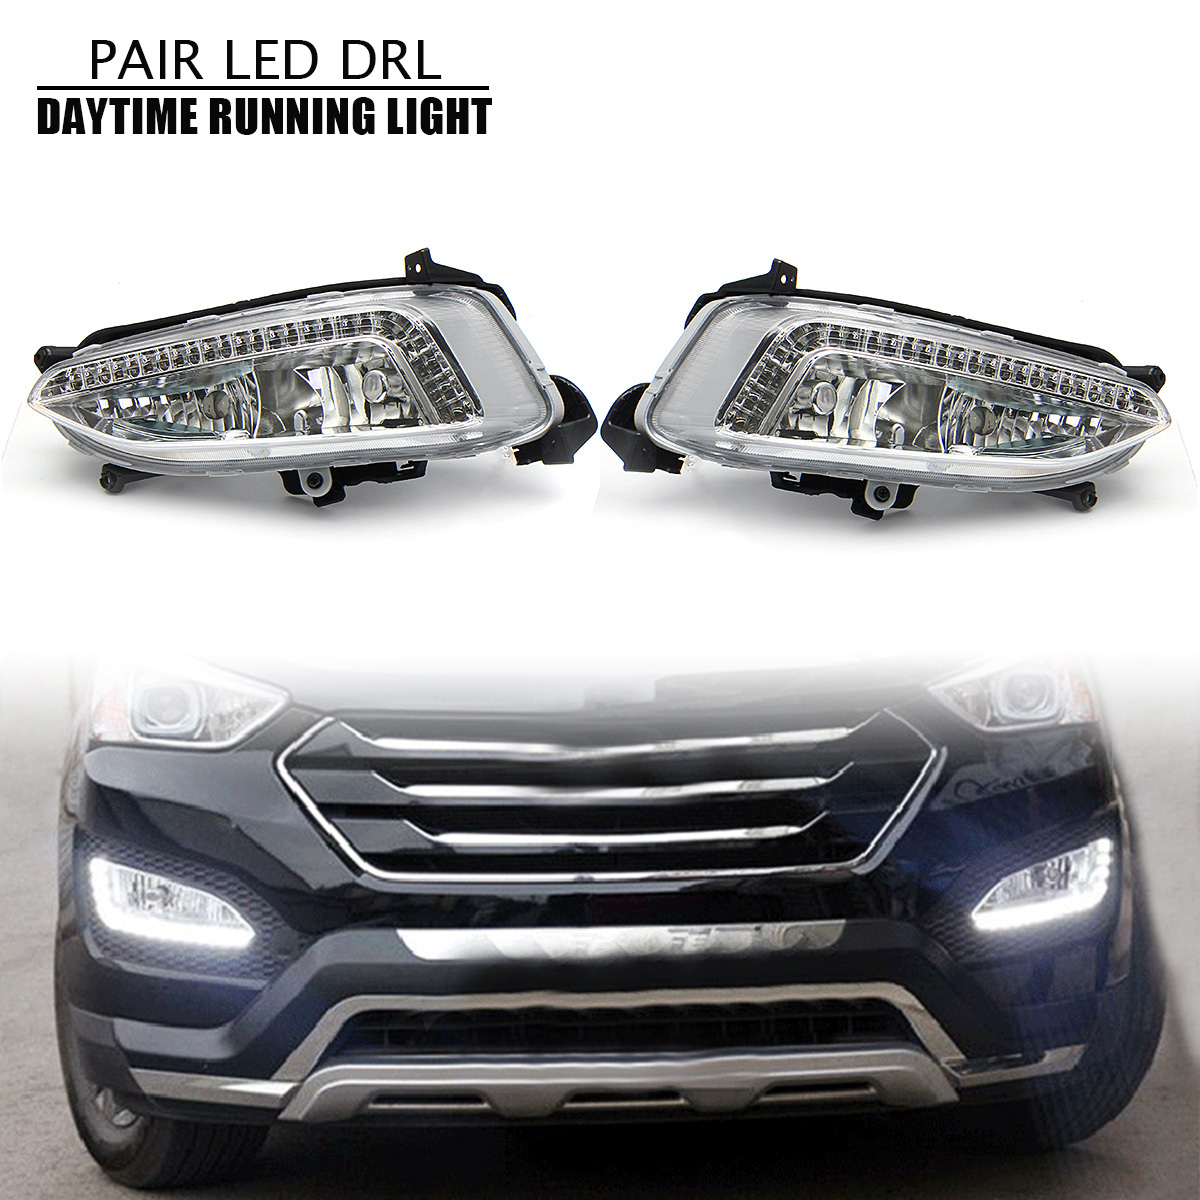 1 Pair 12V Automotive LED Lamp Car Fog Light Assembly White Daytime Running Light Waterproof for hyundai IX45 Santa Fe цены